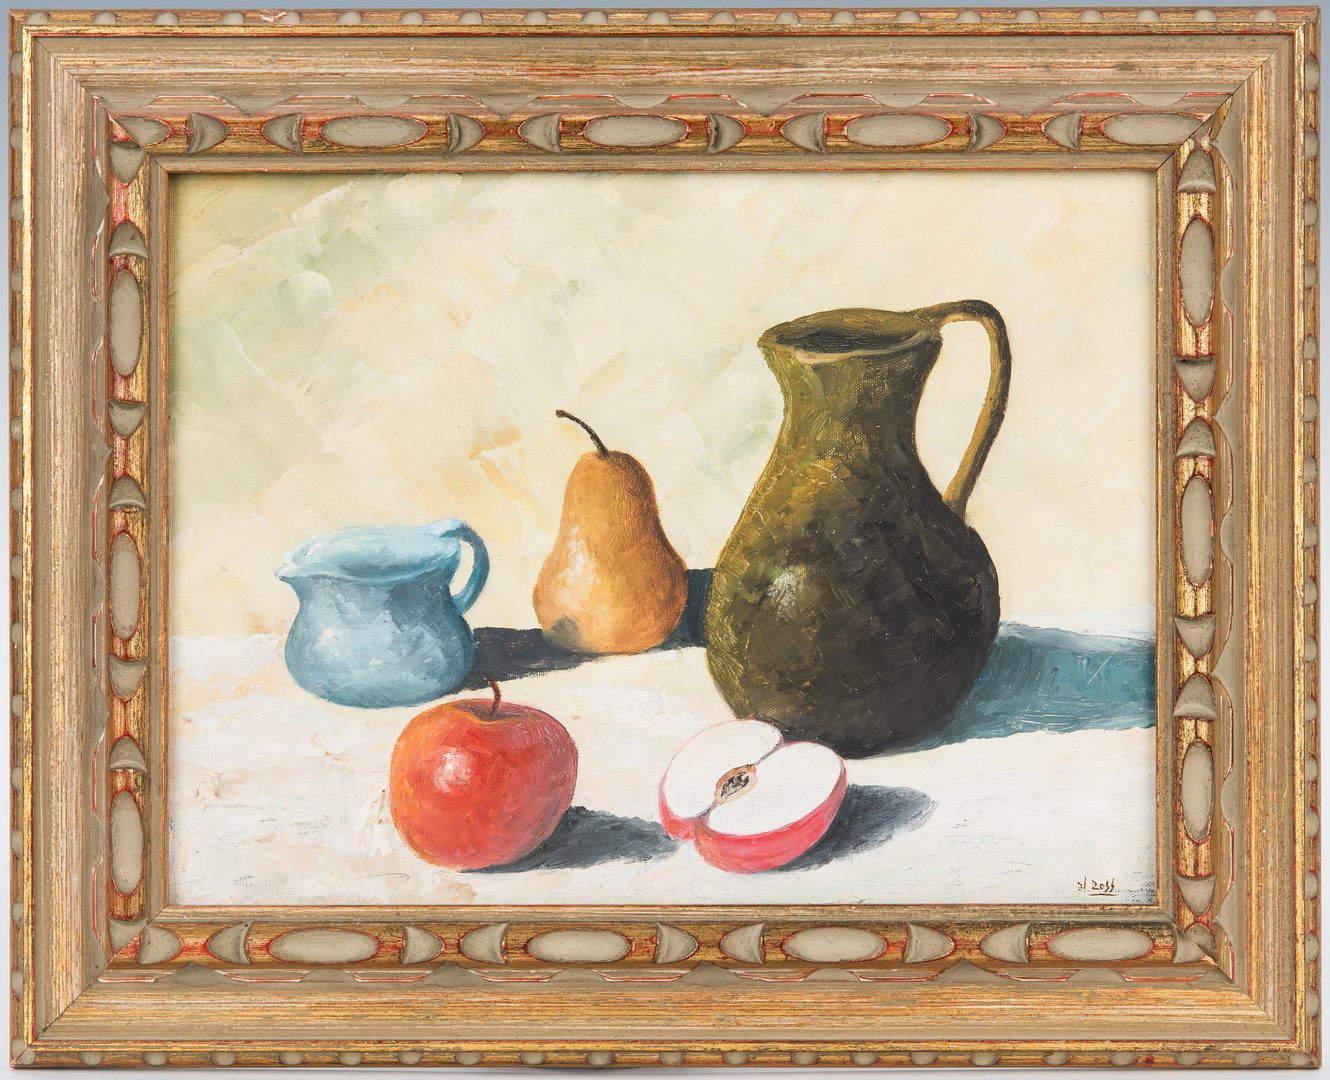 Lot 332: Hicks Tropical Landscape plus Still Life by Henry Ross